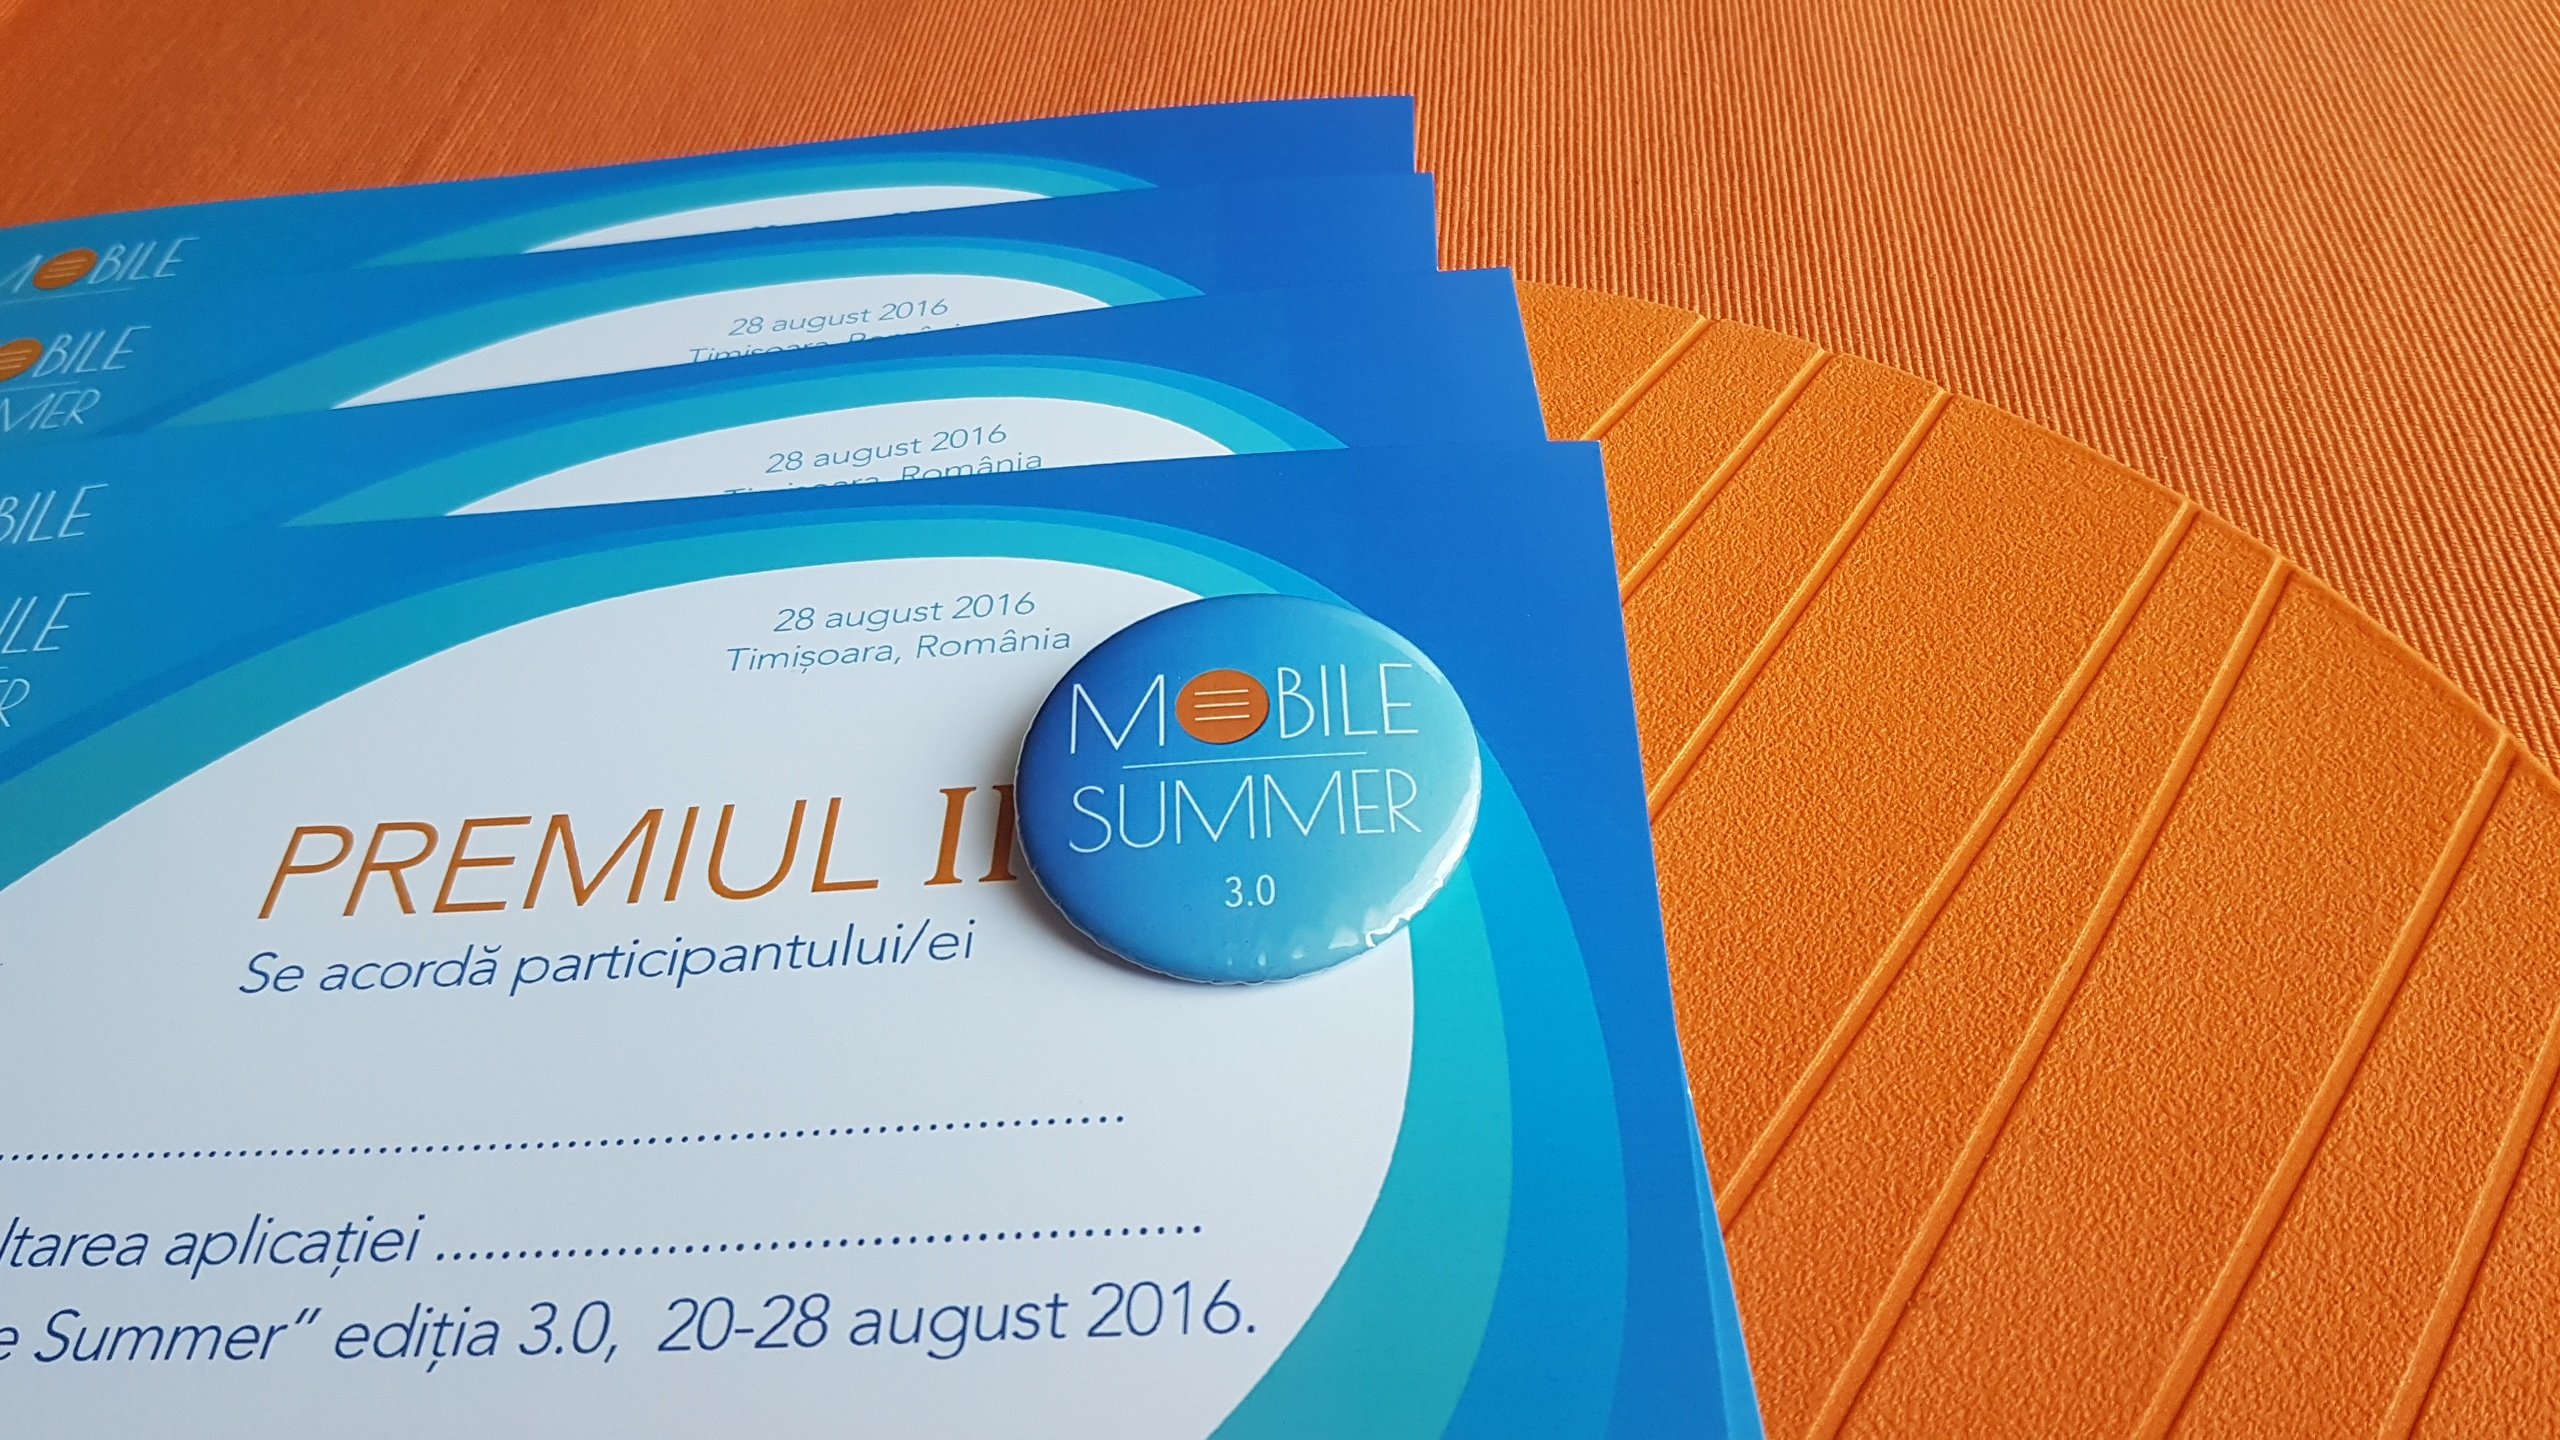 Mobile Summer 3.0 – Apps and Awards